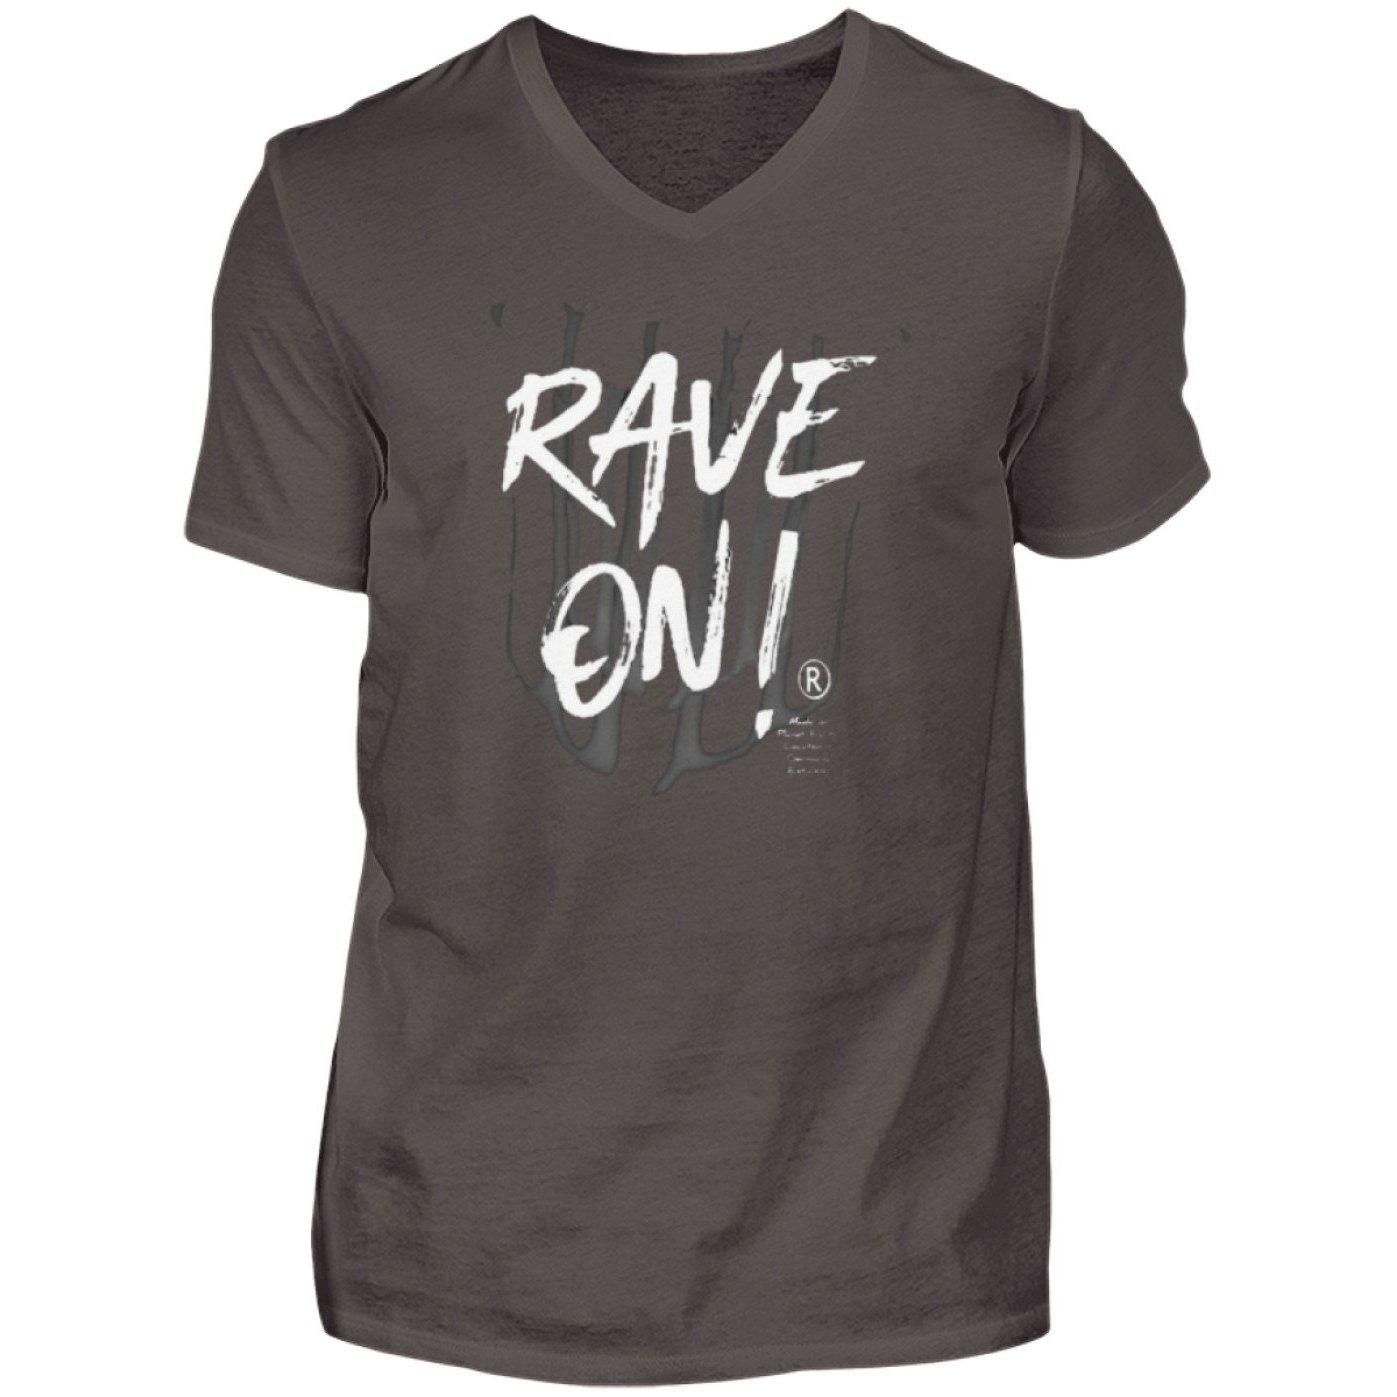 Rave On!® - Made On Planet Earth B2k20 - Herren V-Neck Shirt V-Neck Herrenshirt Smoke (Solid) / S - Rave On!® der Club & Techno Szene Shop für Coole Junge Mode Streetwear Style & Fashion Outfits + Sexy Festival 420 Stuff